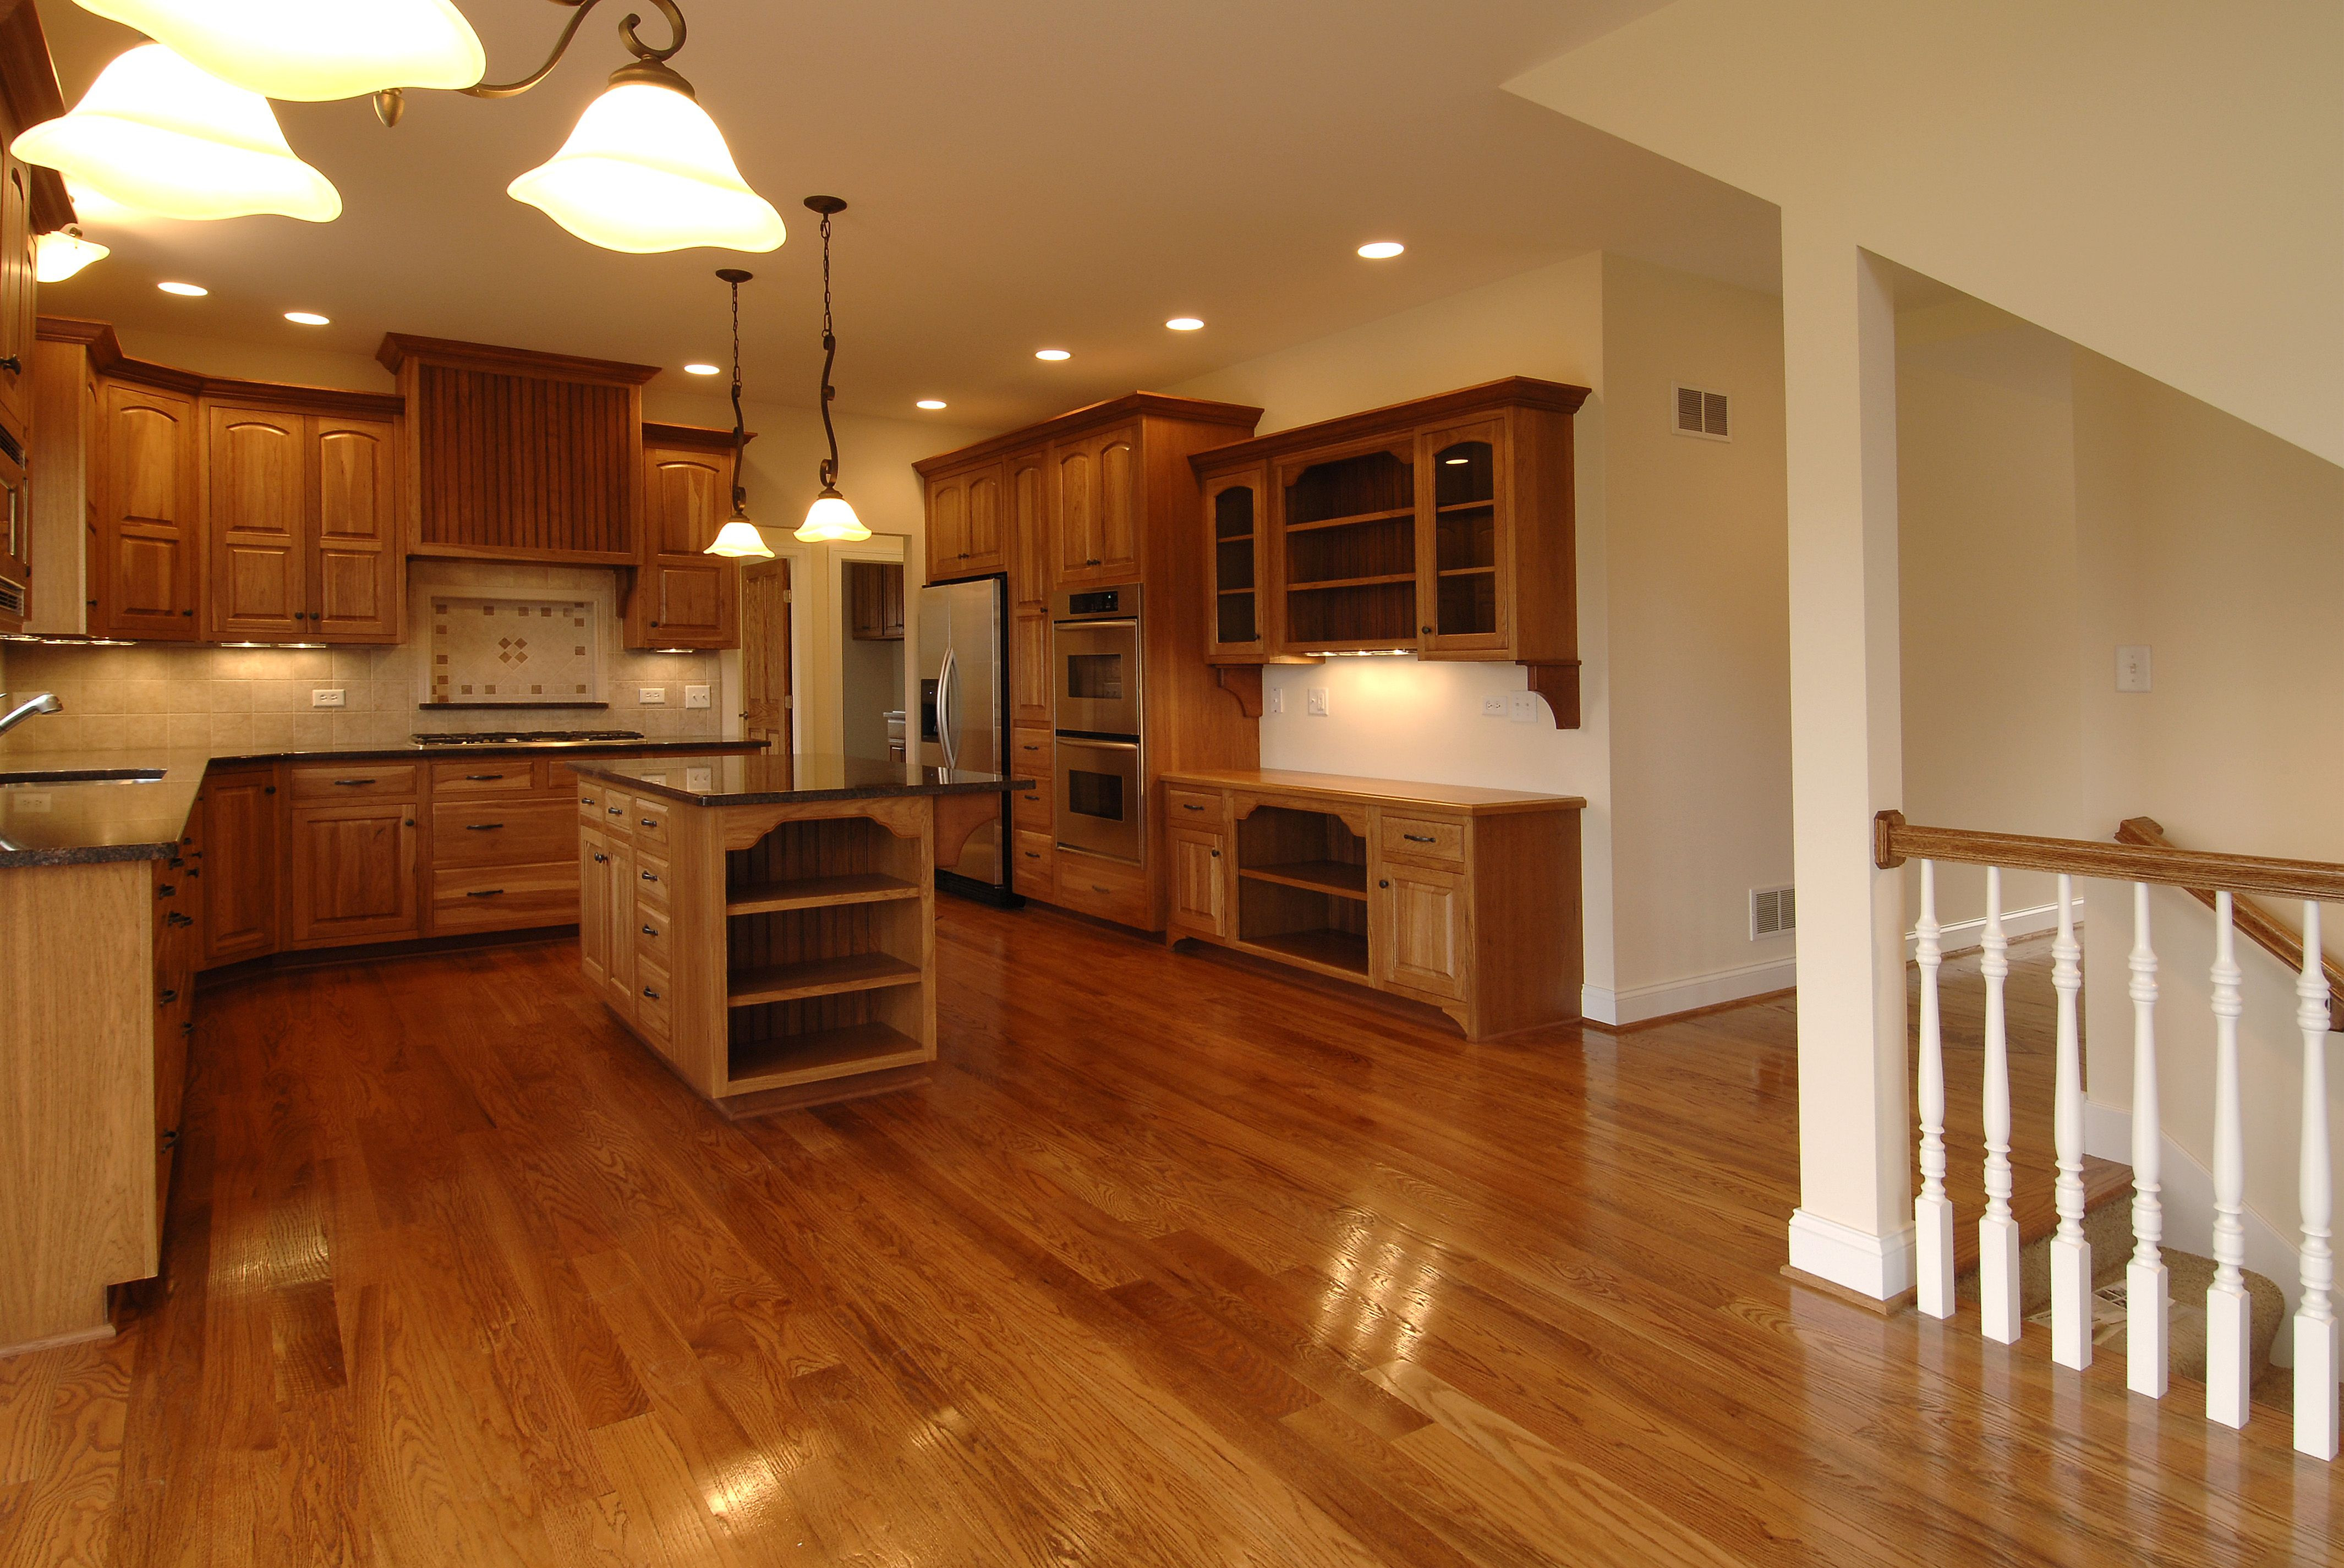 16 Perfect Can You Put Hardwood Floors In Kitchen 2021 free download can you put hardwood floors in kitchen of bewitching pictures of hardwood floors in kitchens in floored for bewitching pictures of hardwood floors in kitchens in floored kitchen decor items